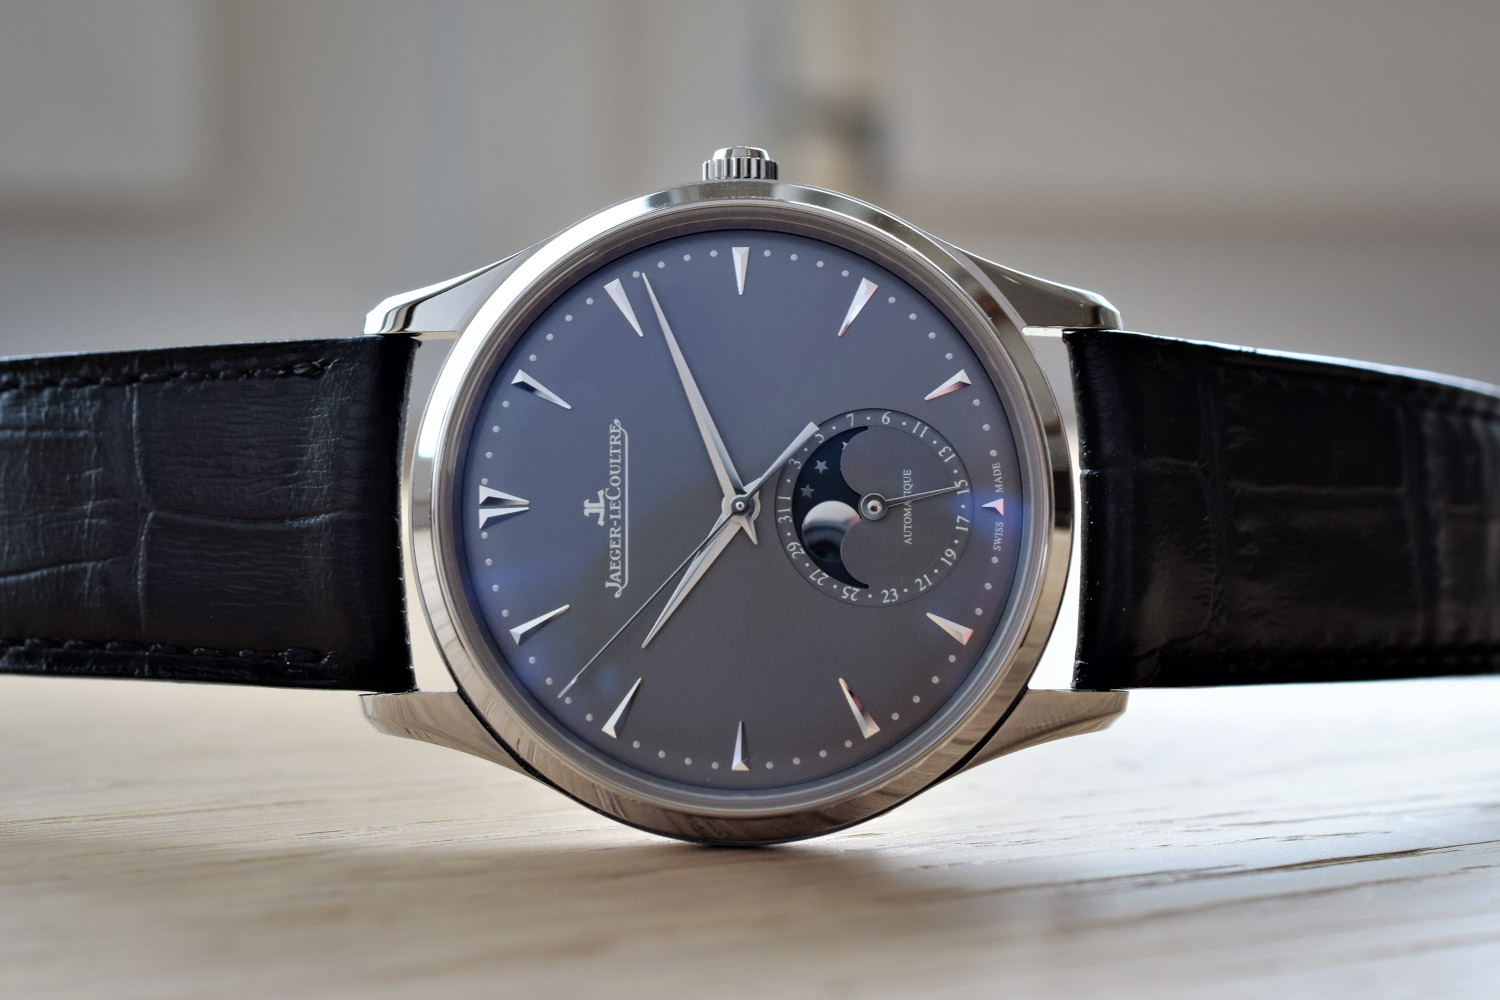 f05245afe9c0c Jaeger-LeCoultre Master Ultra-Thin With Blue and Grey Dials For 2017 ...